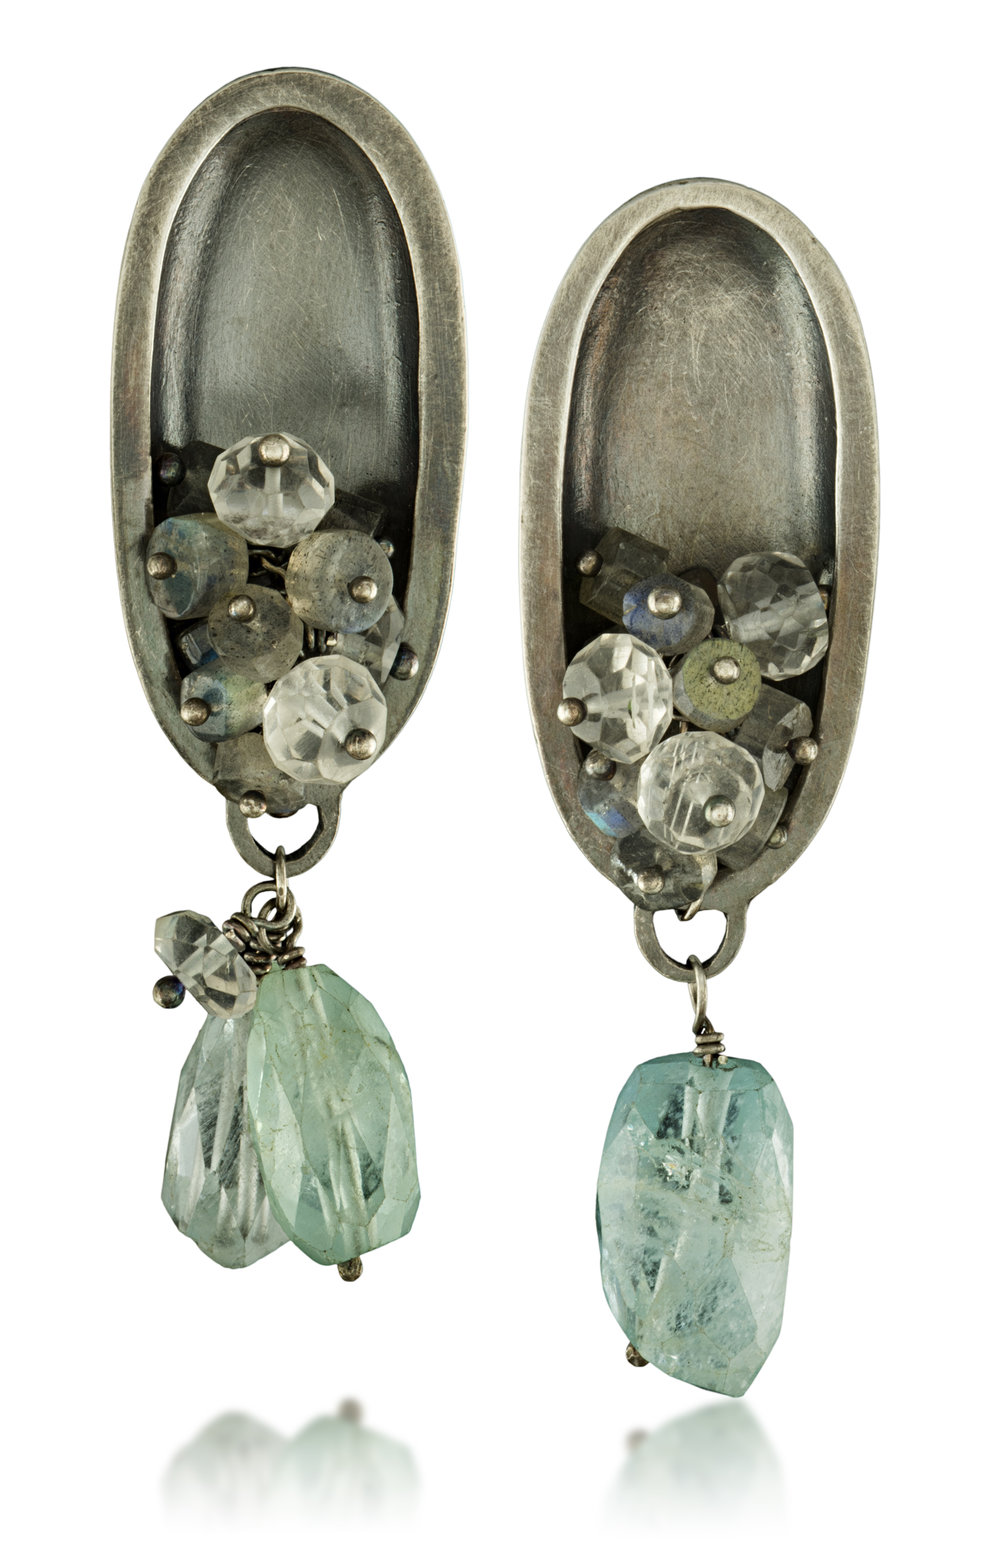 sarah_Chapman_aqumarine_earrings.jpg